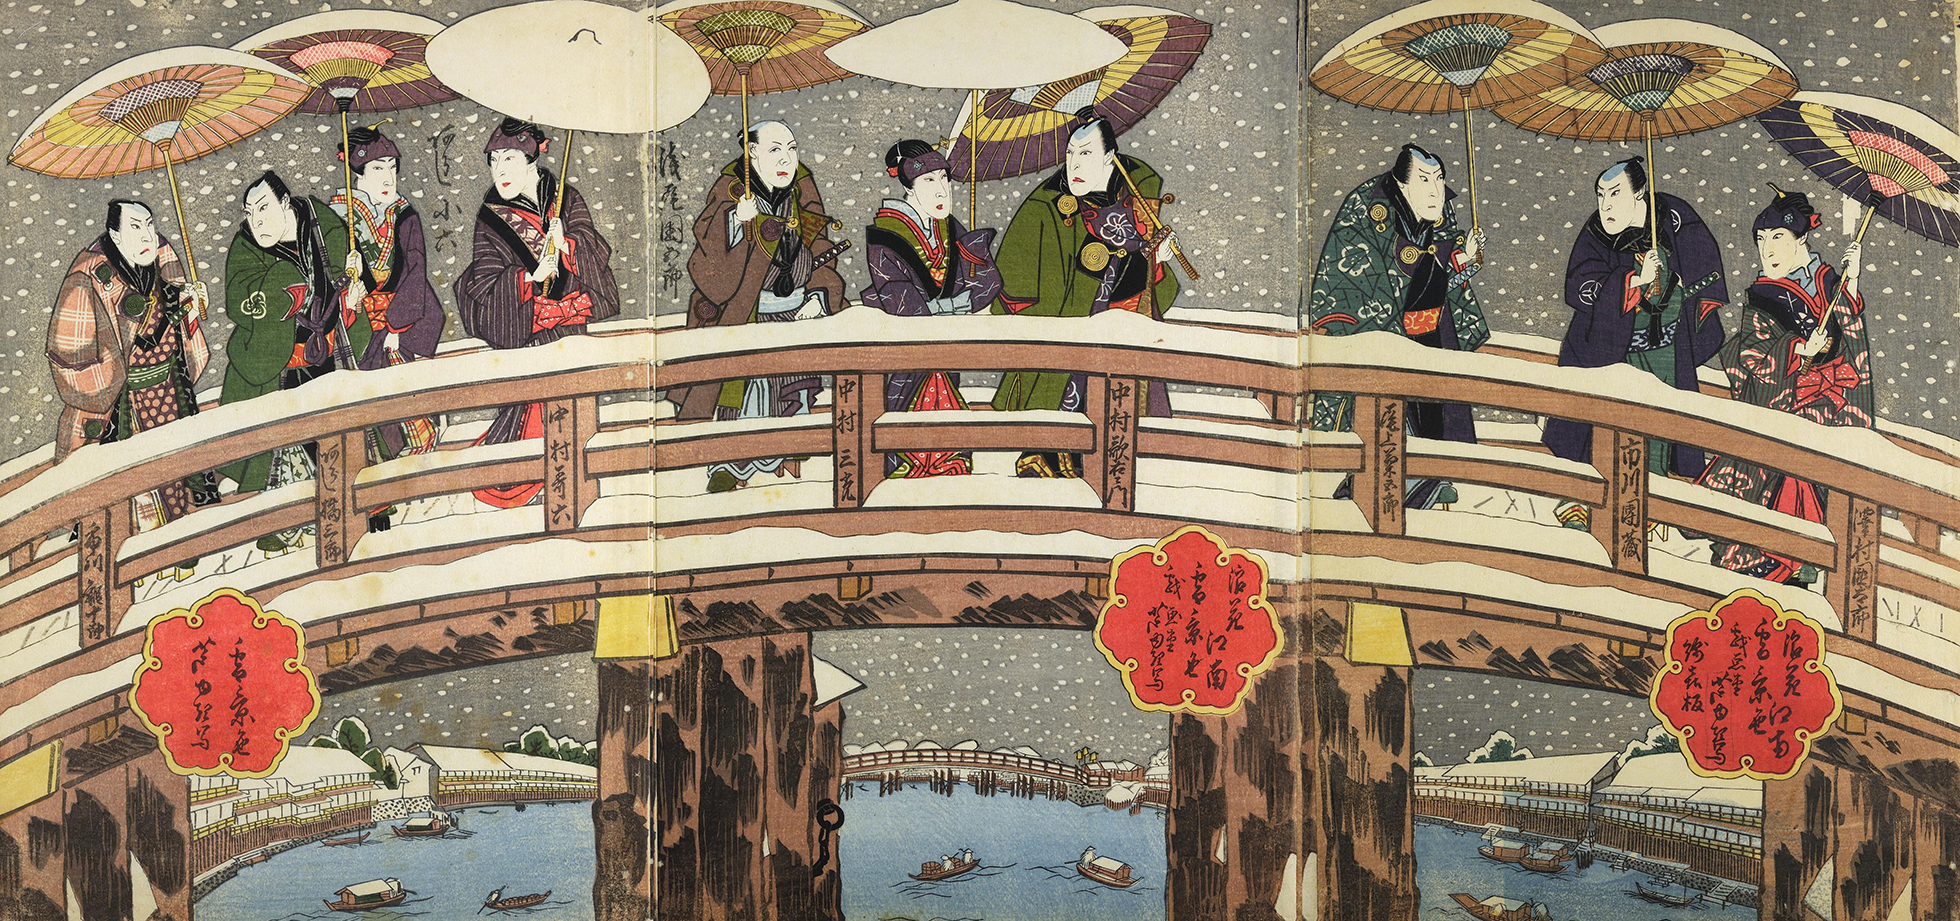 A colour woodblock print showing kabuki actors crossing a bridge in the snow while wearing female clothes.